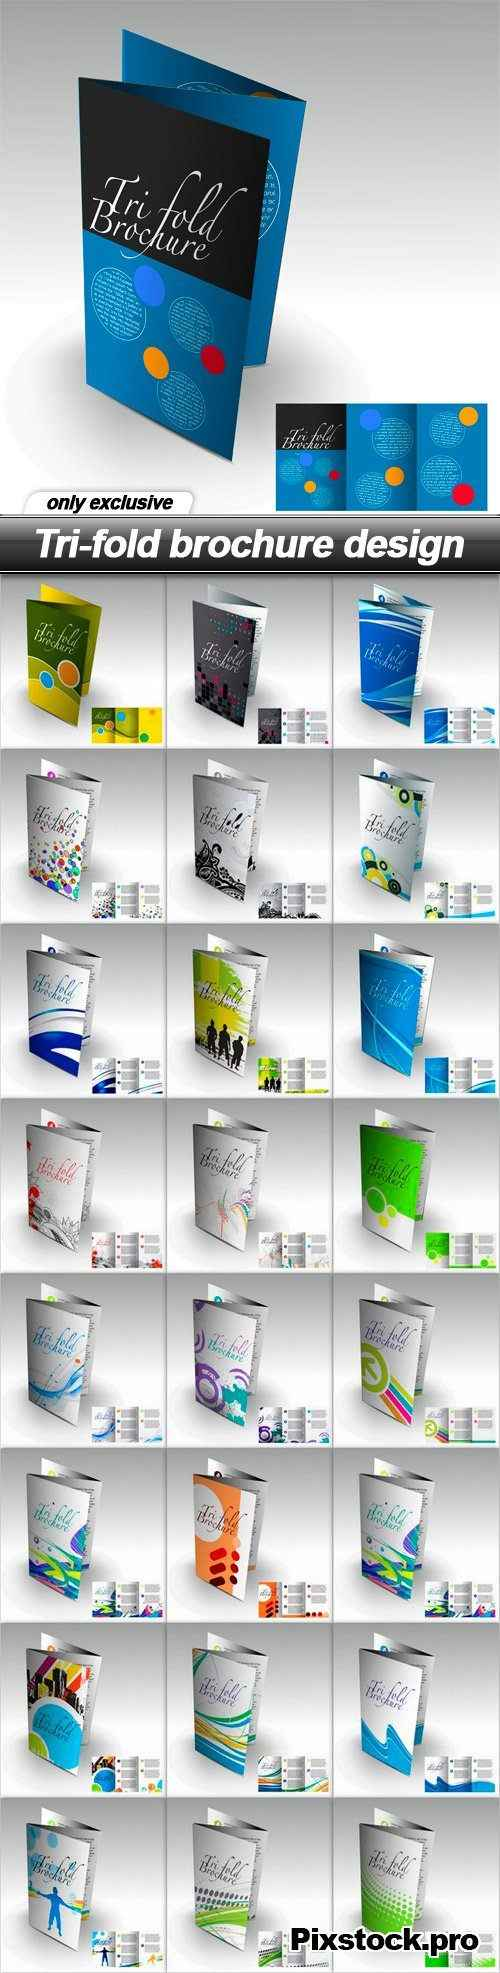 Tri-fold brochure design – 25 EPS